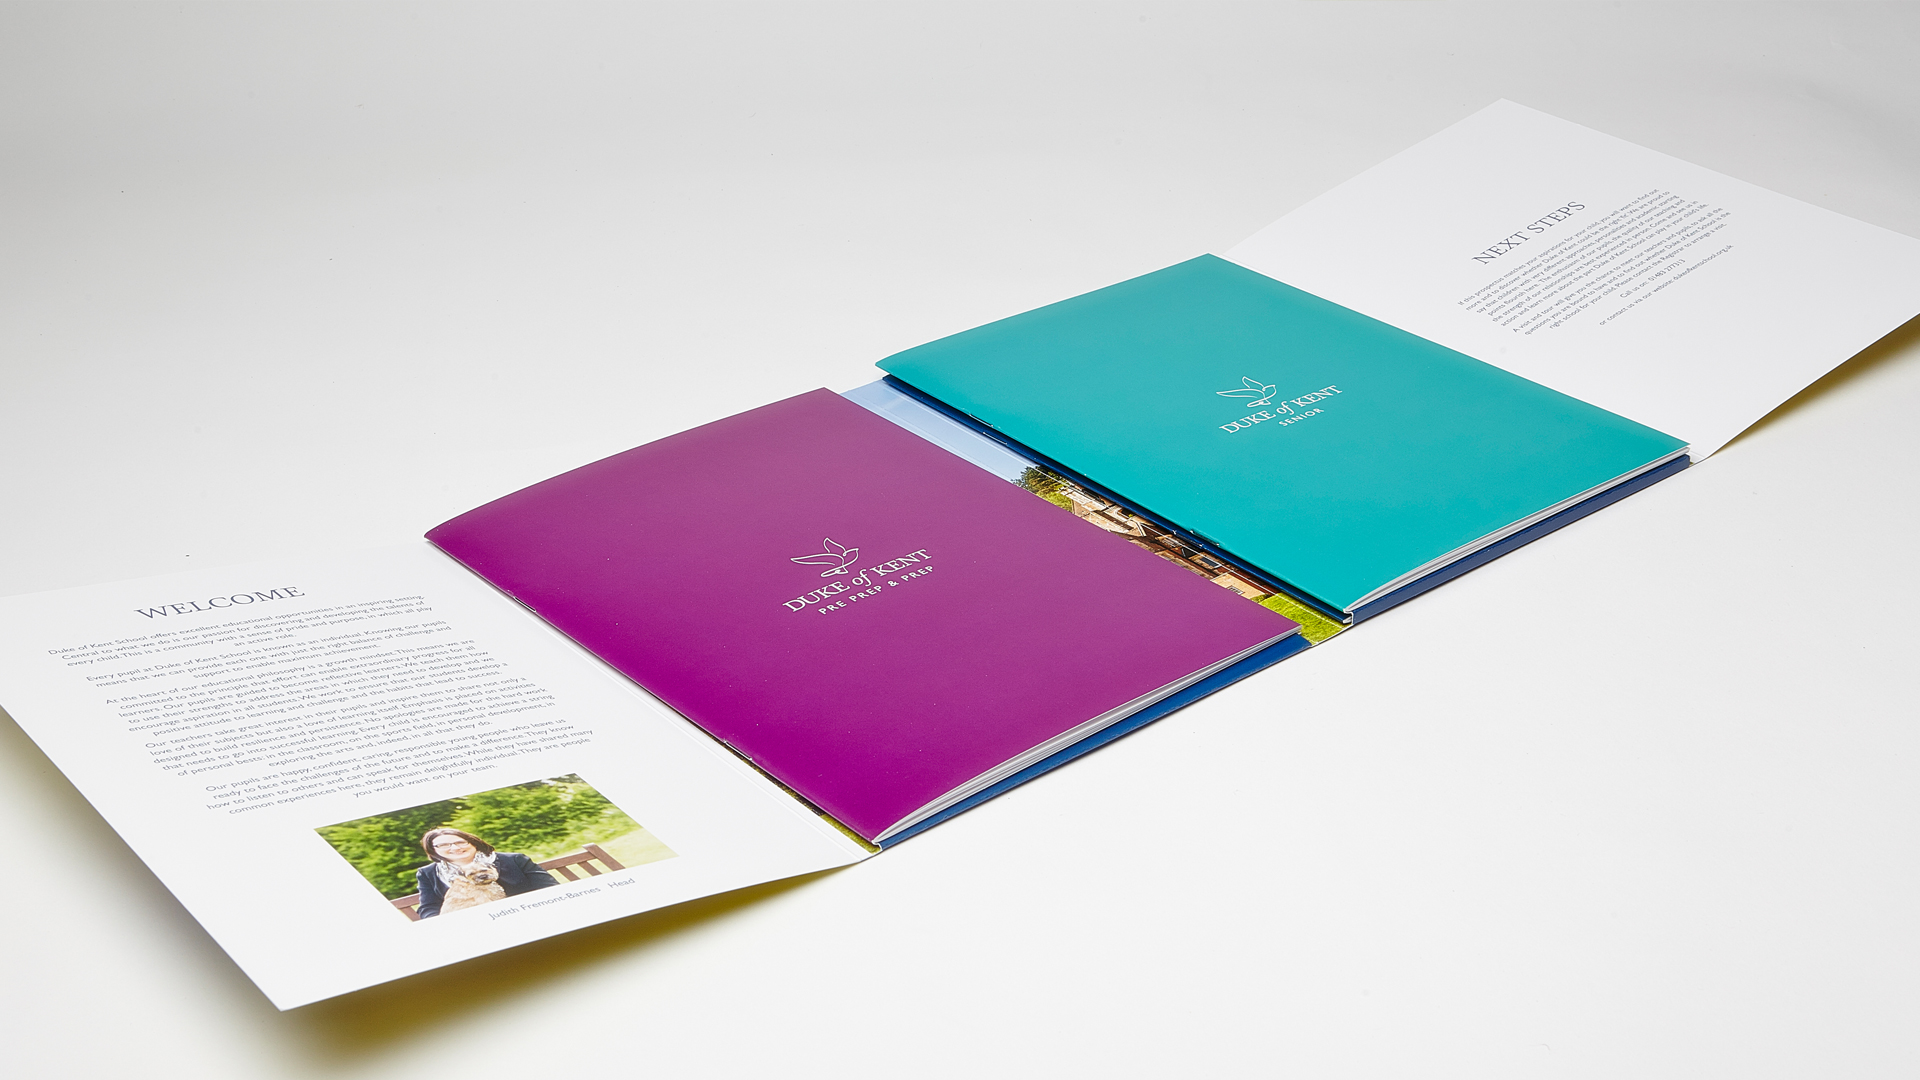 Duke Of Kent School prospectus open showing prospectuses